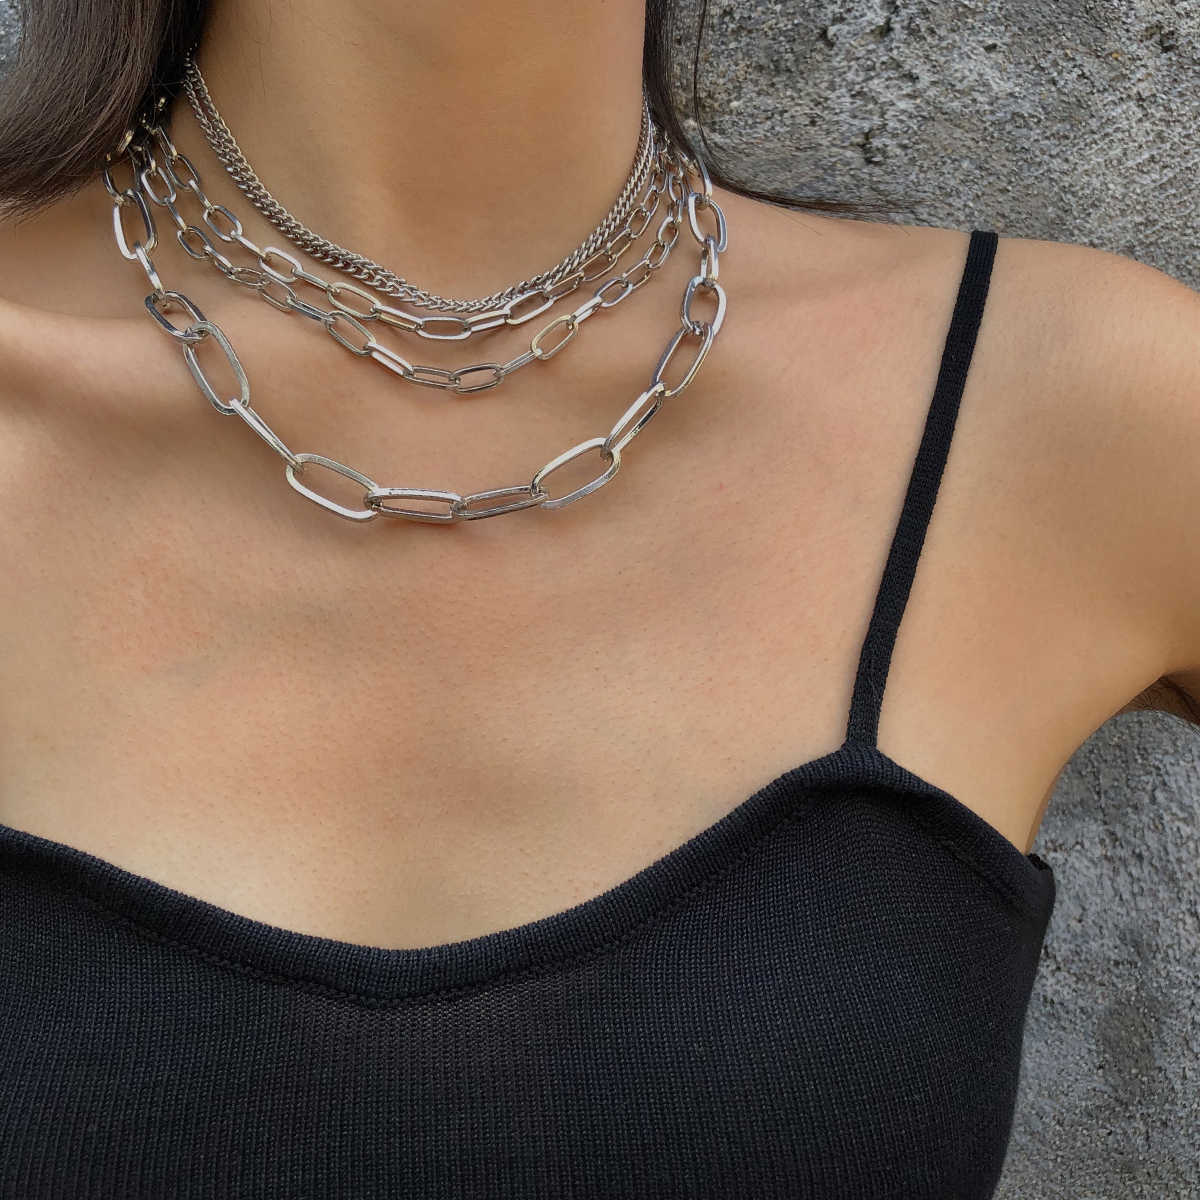 Huture 2PCS Retro Chunky Punk Hip-Hop Costume Jewelry Snake Curb Turnover Heavy Chain Collar Choker Fully Adjustable Necklace Durable Clasp Strong Removable Delicate for Unisex Gift Gold//Silver